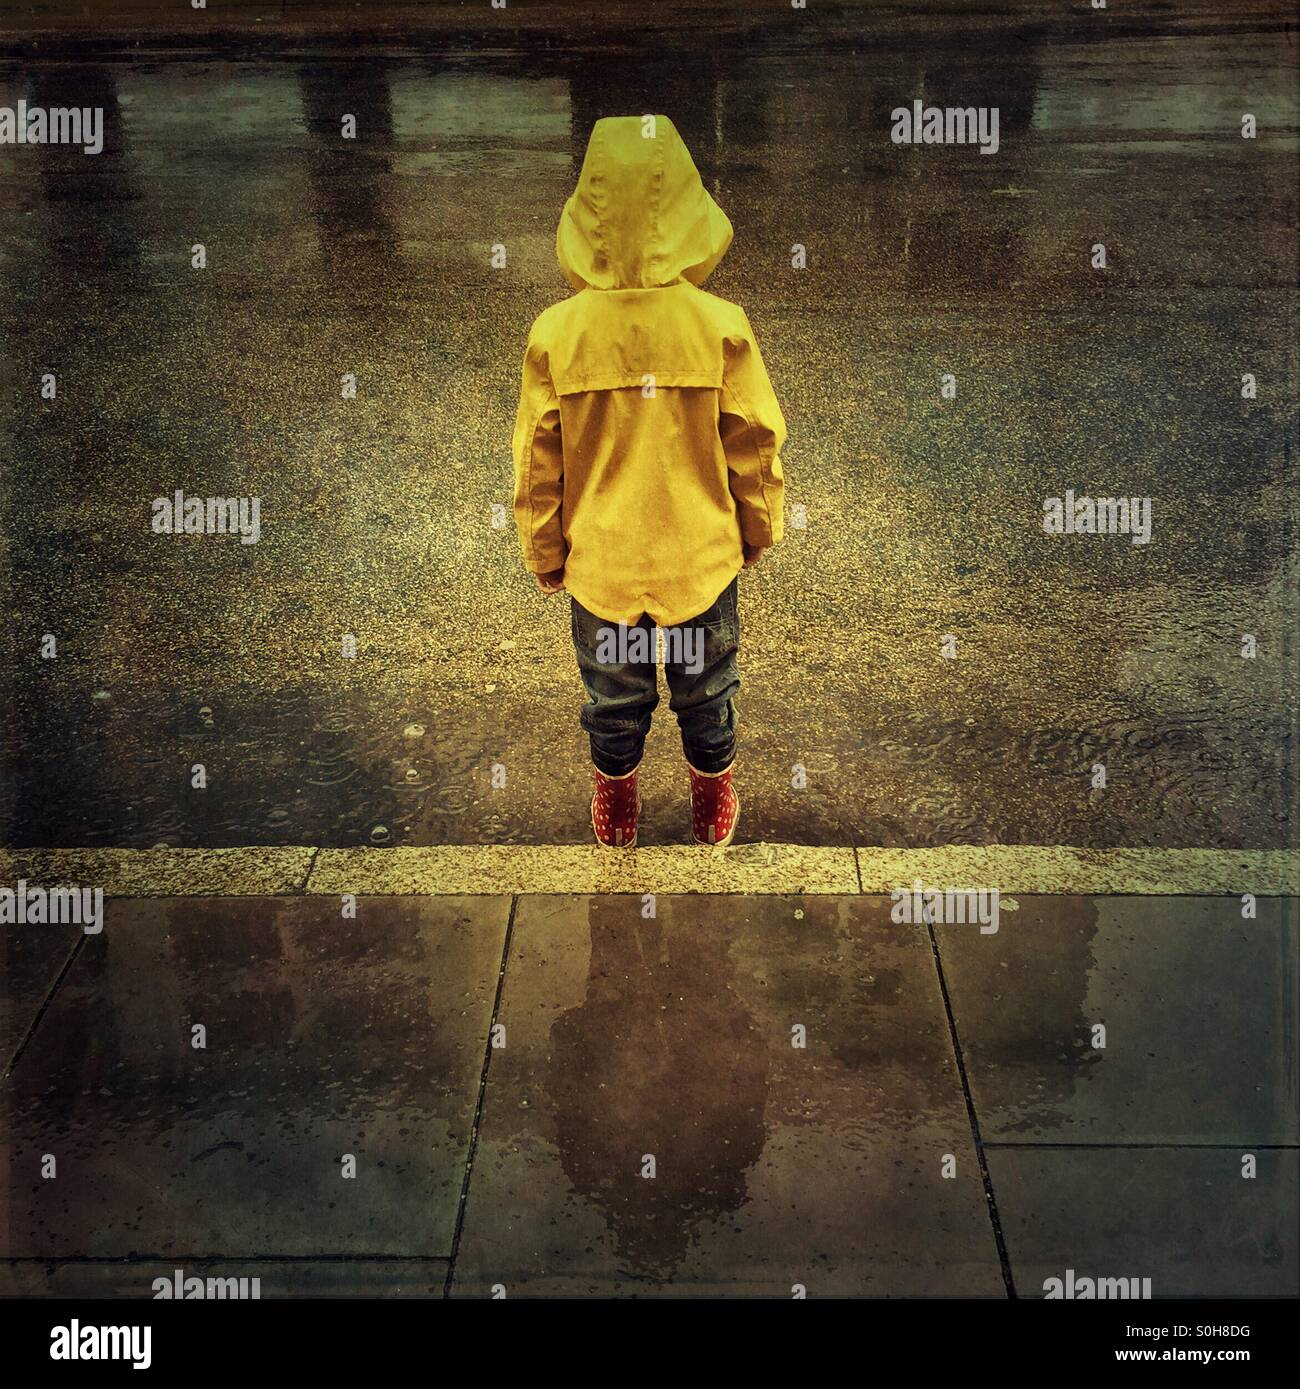 Child standing in a puddle in the rain - Stock Image